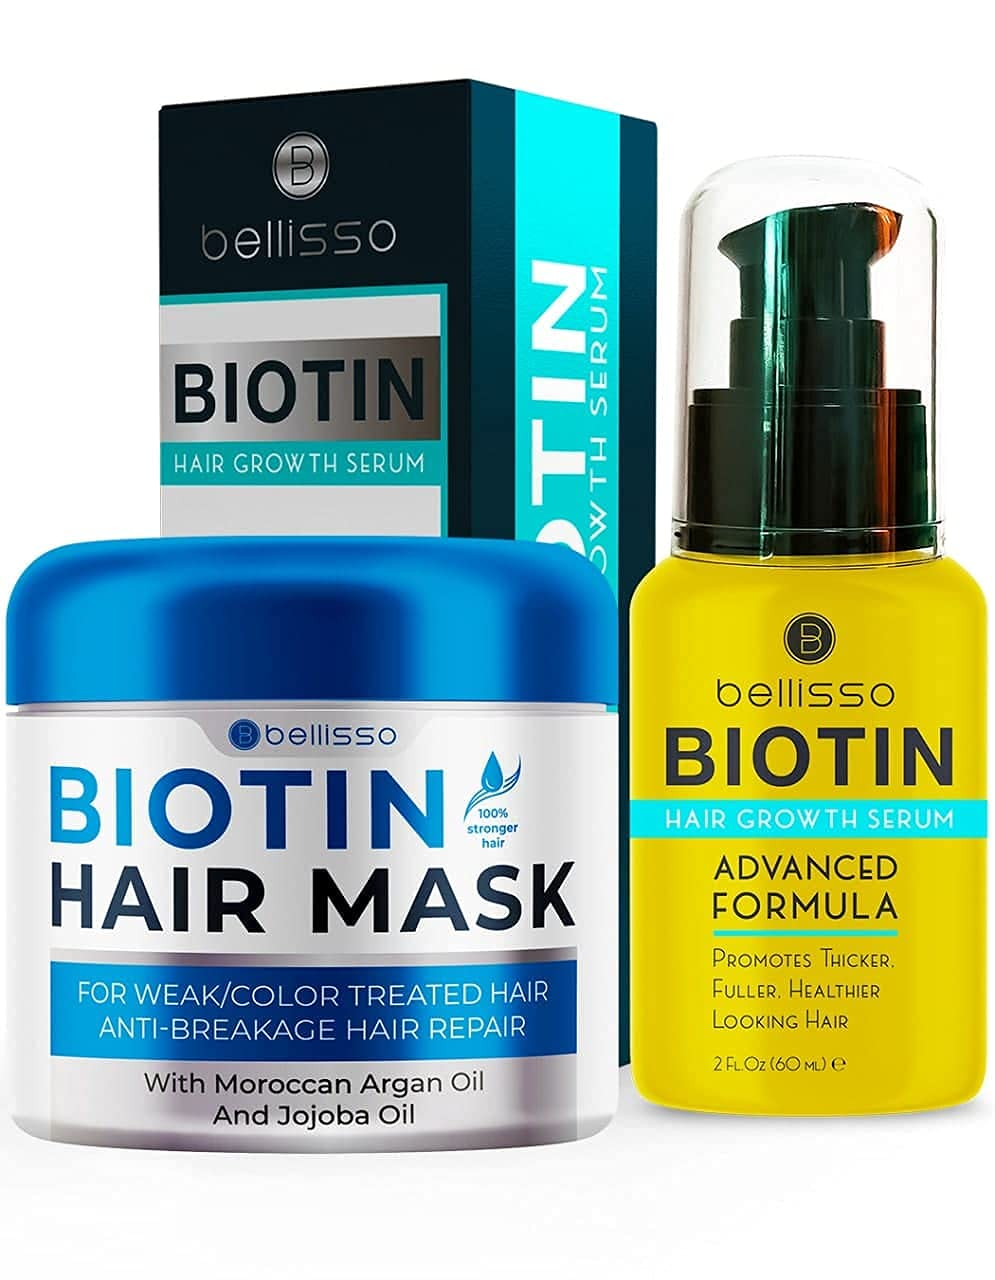 Bellisso Biotin Hair Conditioner Mask Jacksonville Mall Serum Sales and for